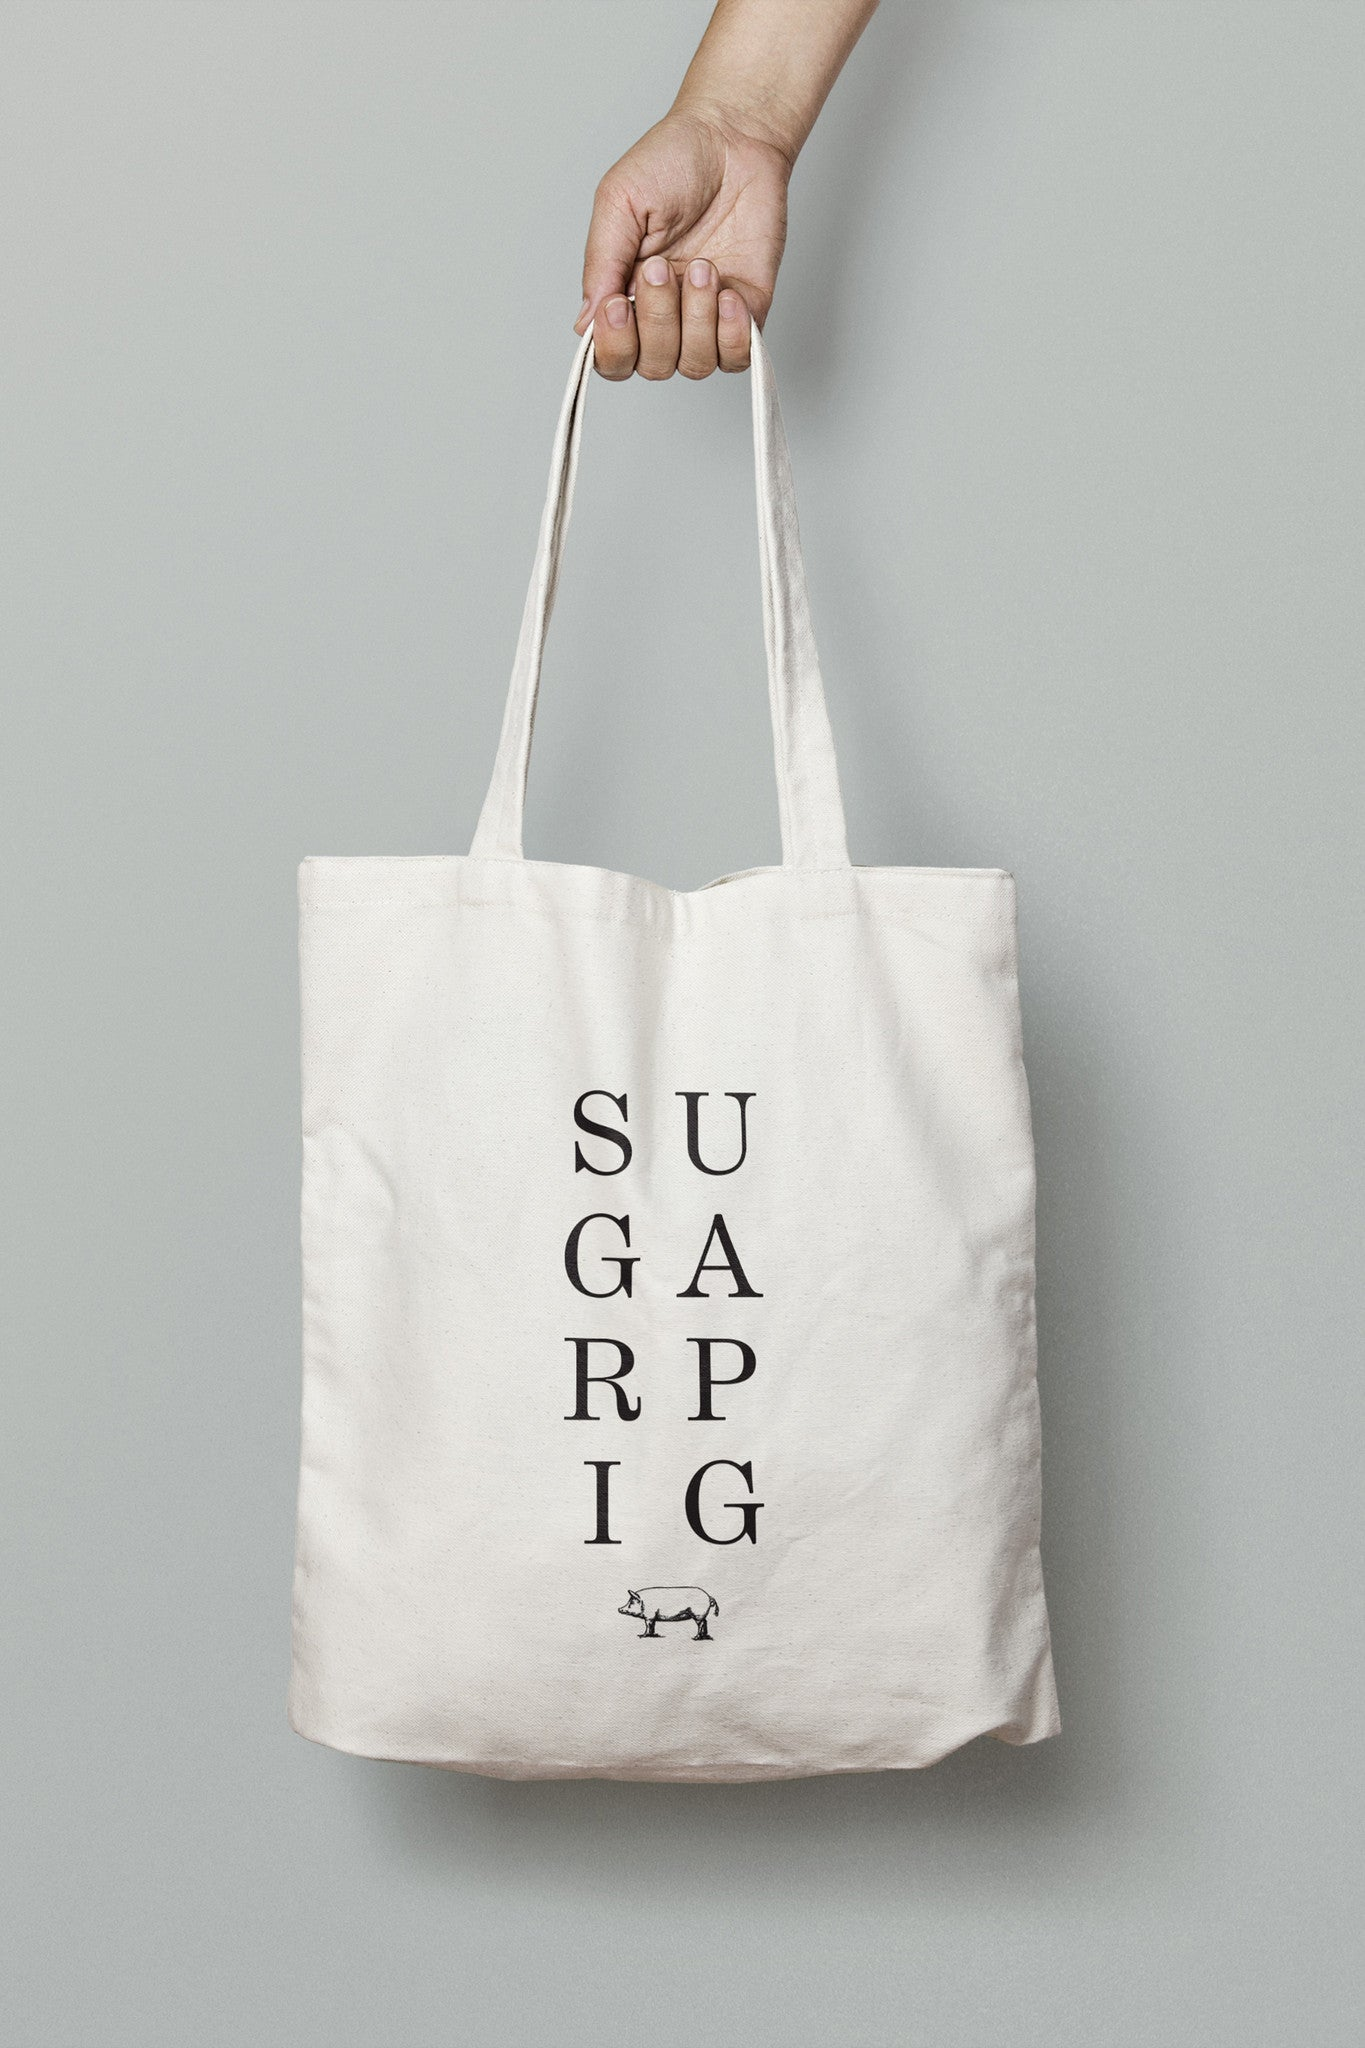 Sugarpig Tote by emerybloom